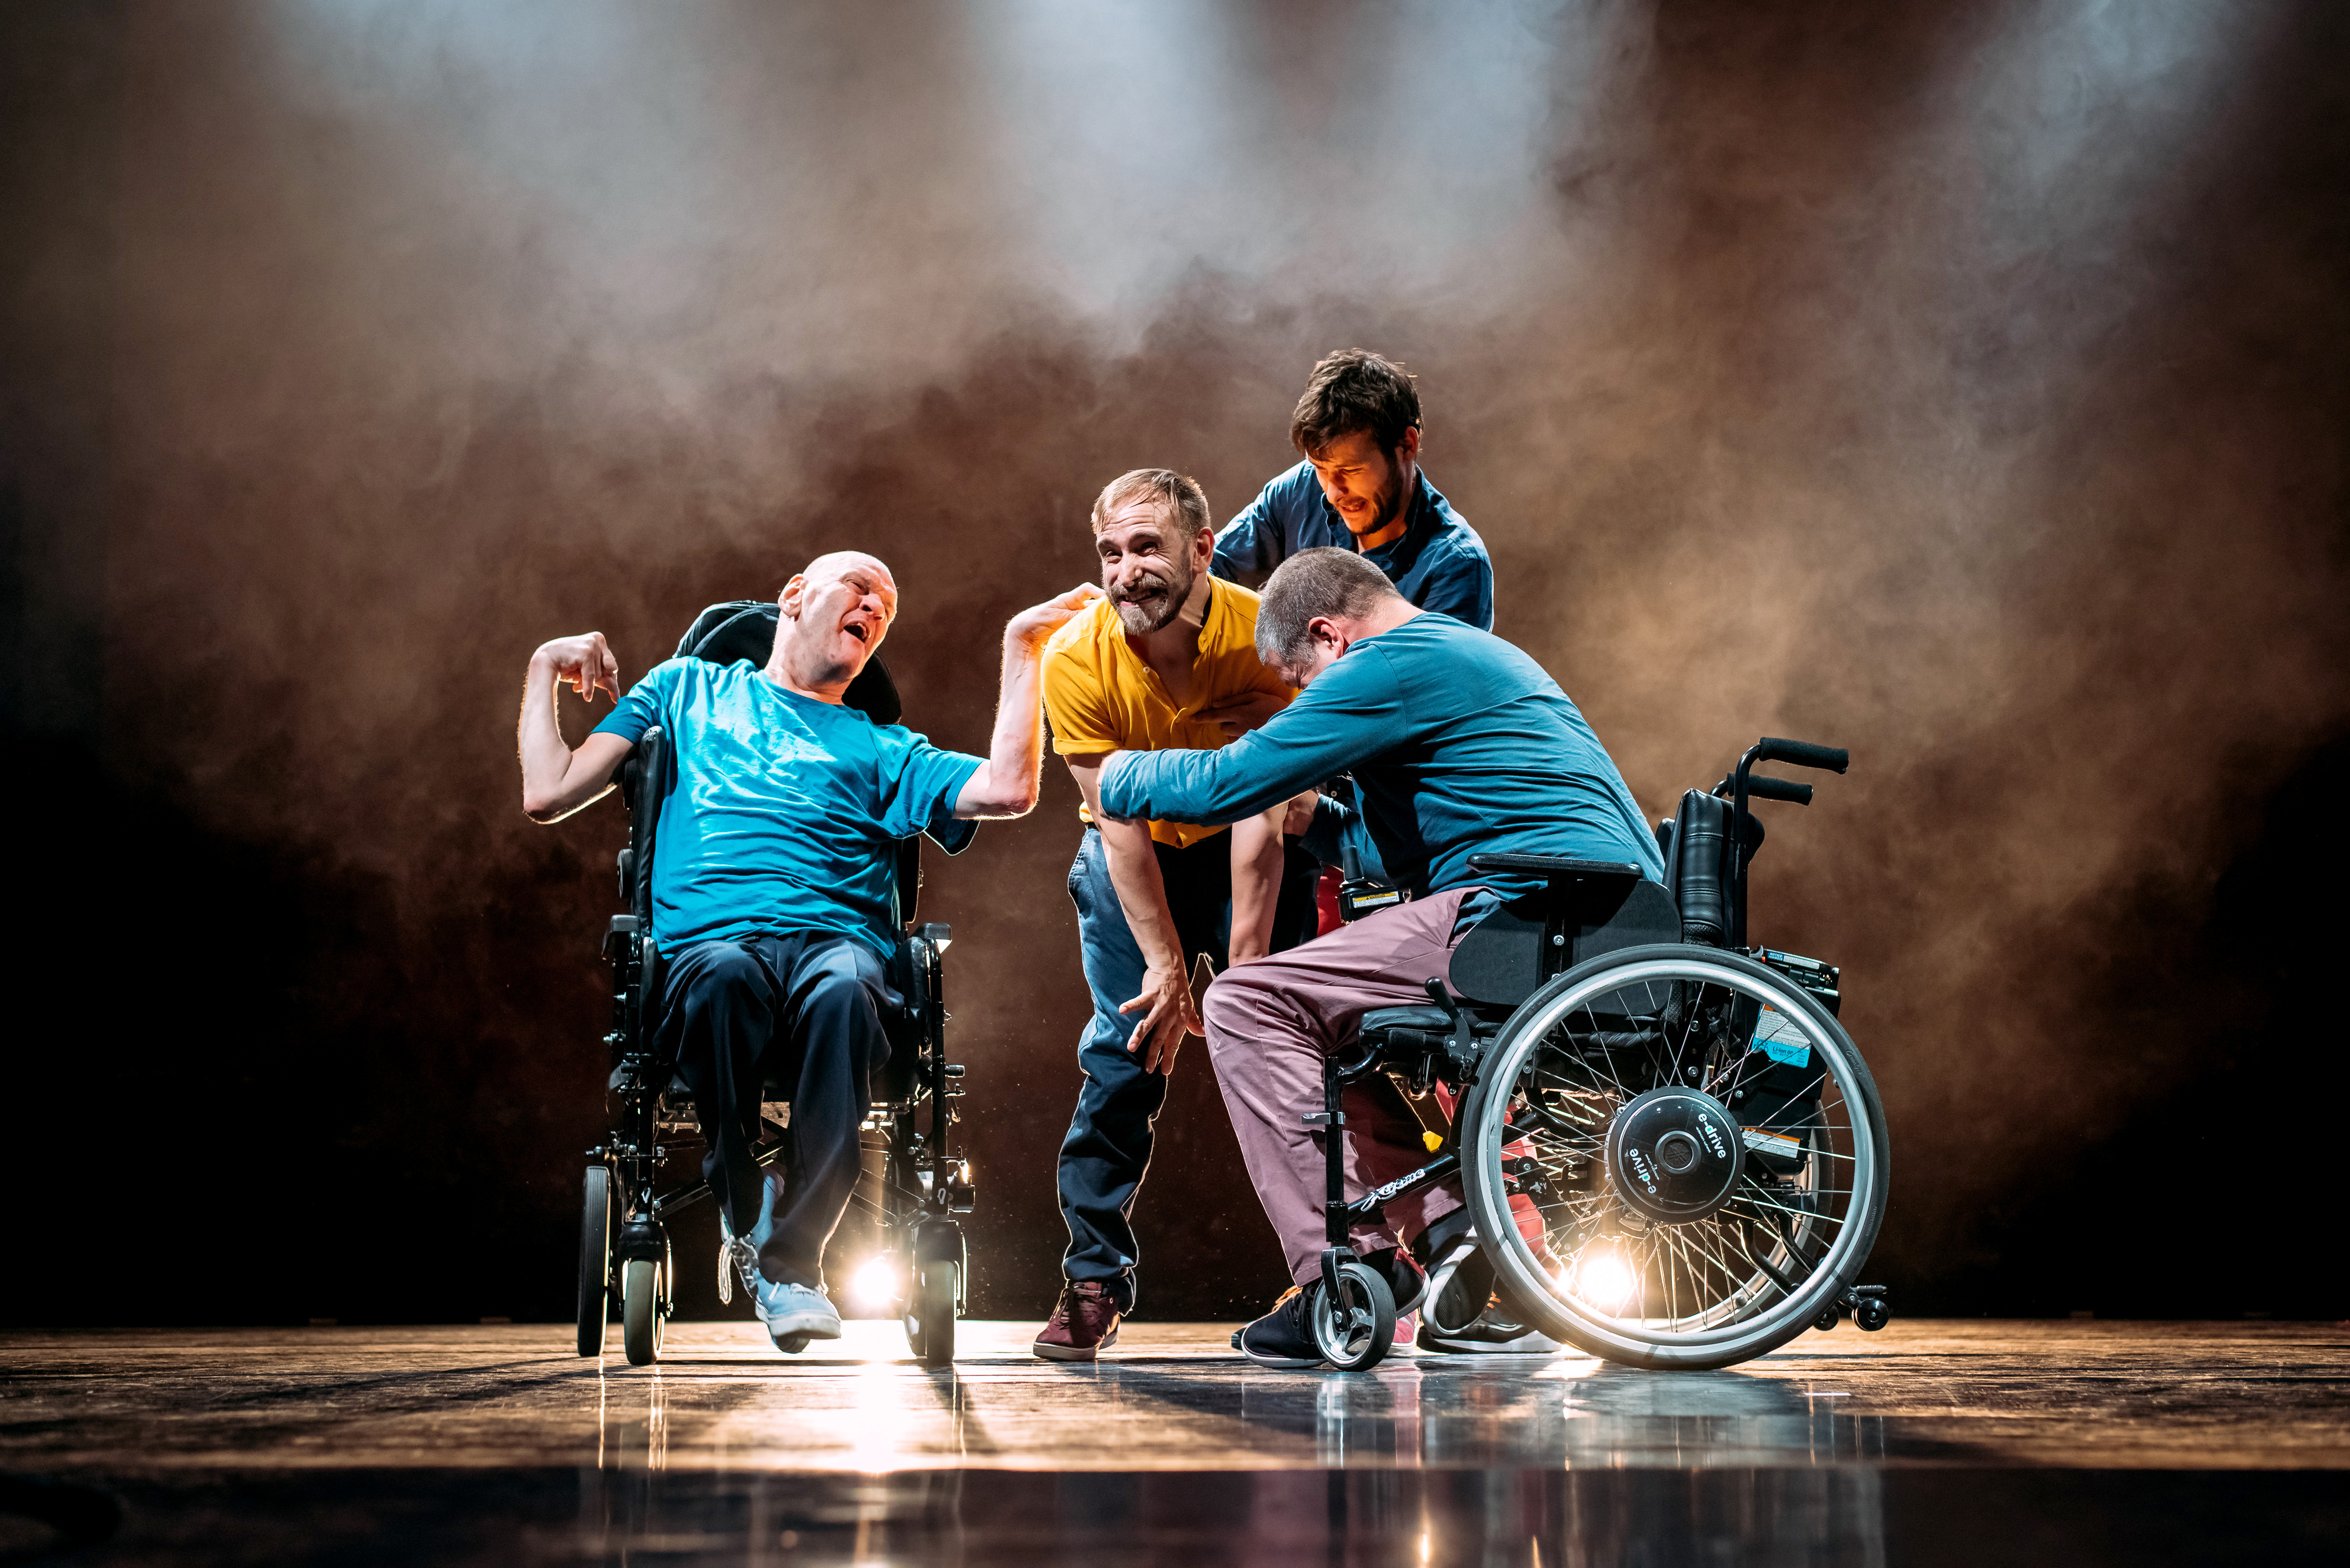 Four male performers clustered on a slightly smokey looking stage. Two of them are in wheelchairs, the other two are standing. Their ages appear to range from young to middle aged and they are dressed in various coloured shirts and jeans. They all appear to be reaching out to grab a man in a yellow T shirt who is standing in the middle of them all.